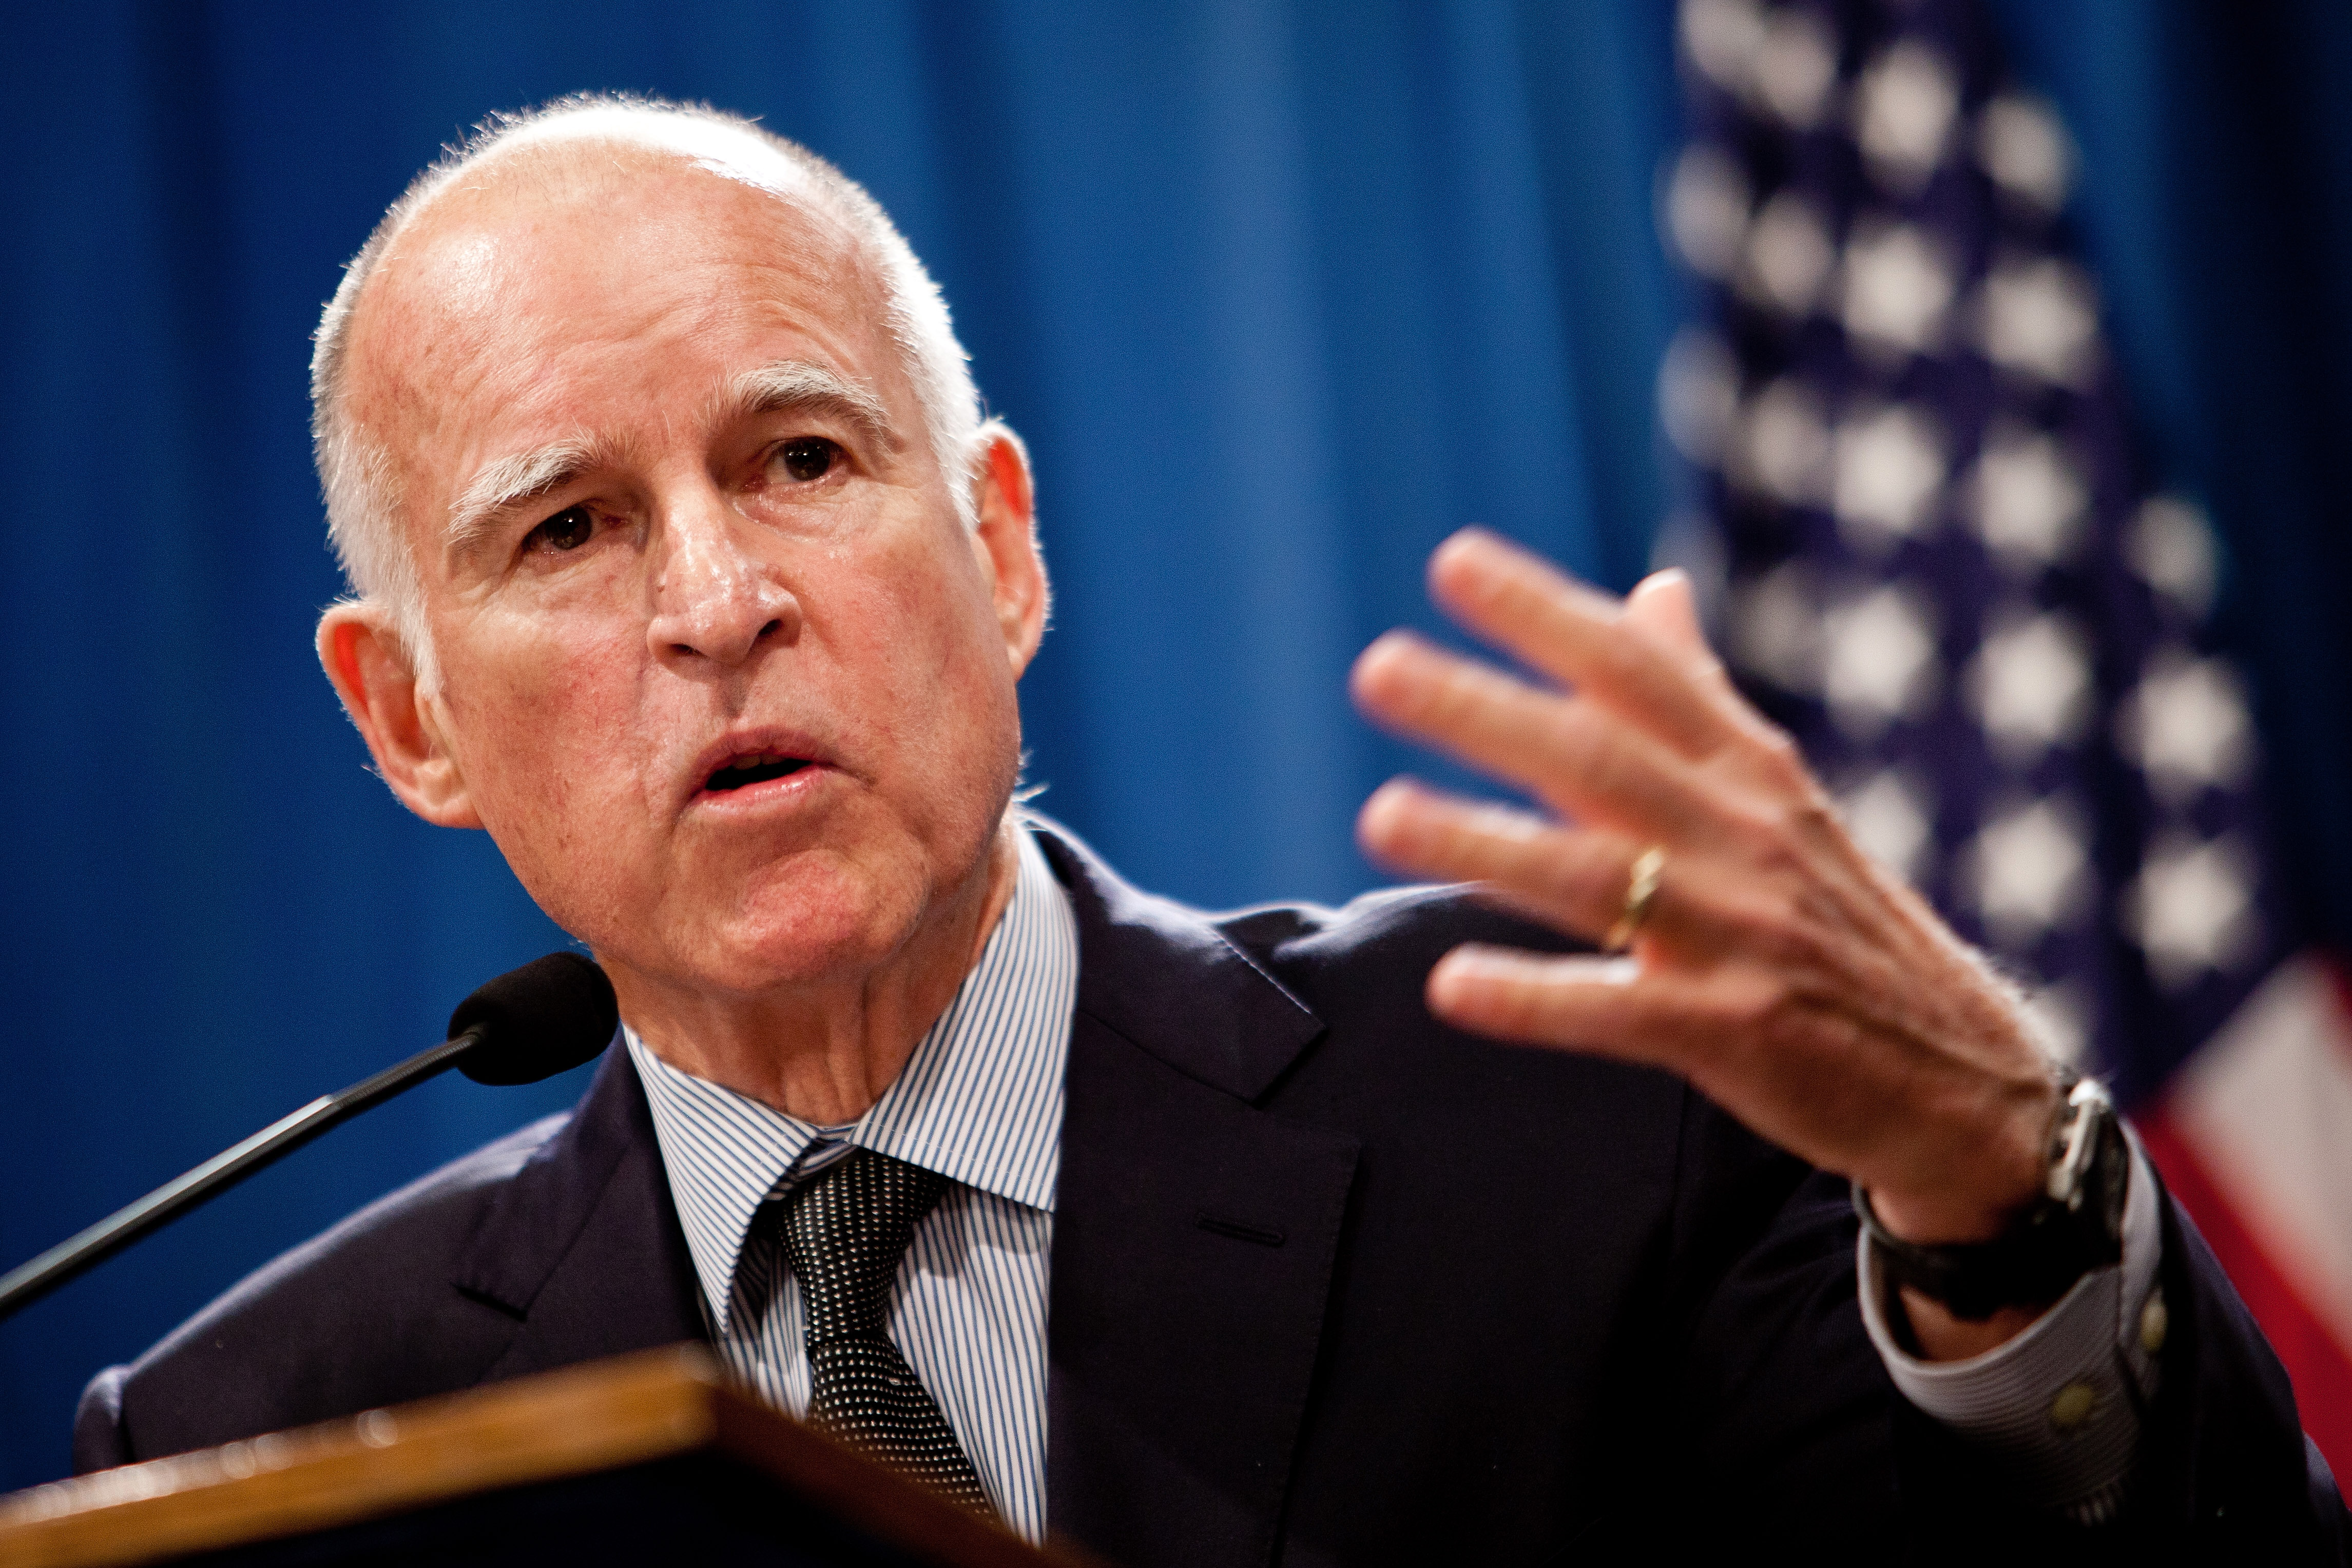 Democratic Governor, Jerry Brown. - JerryBrownPensionOverhaul102811-11